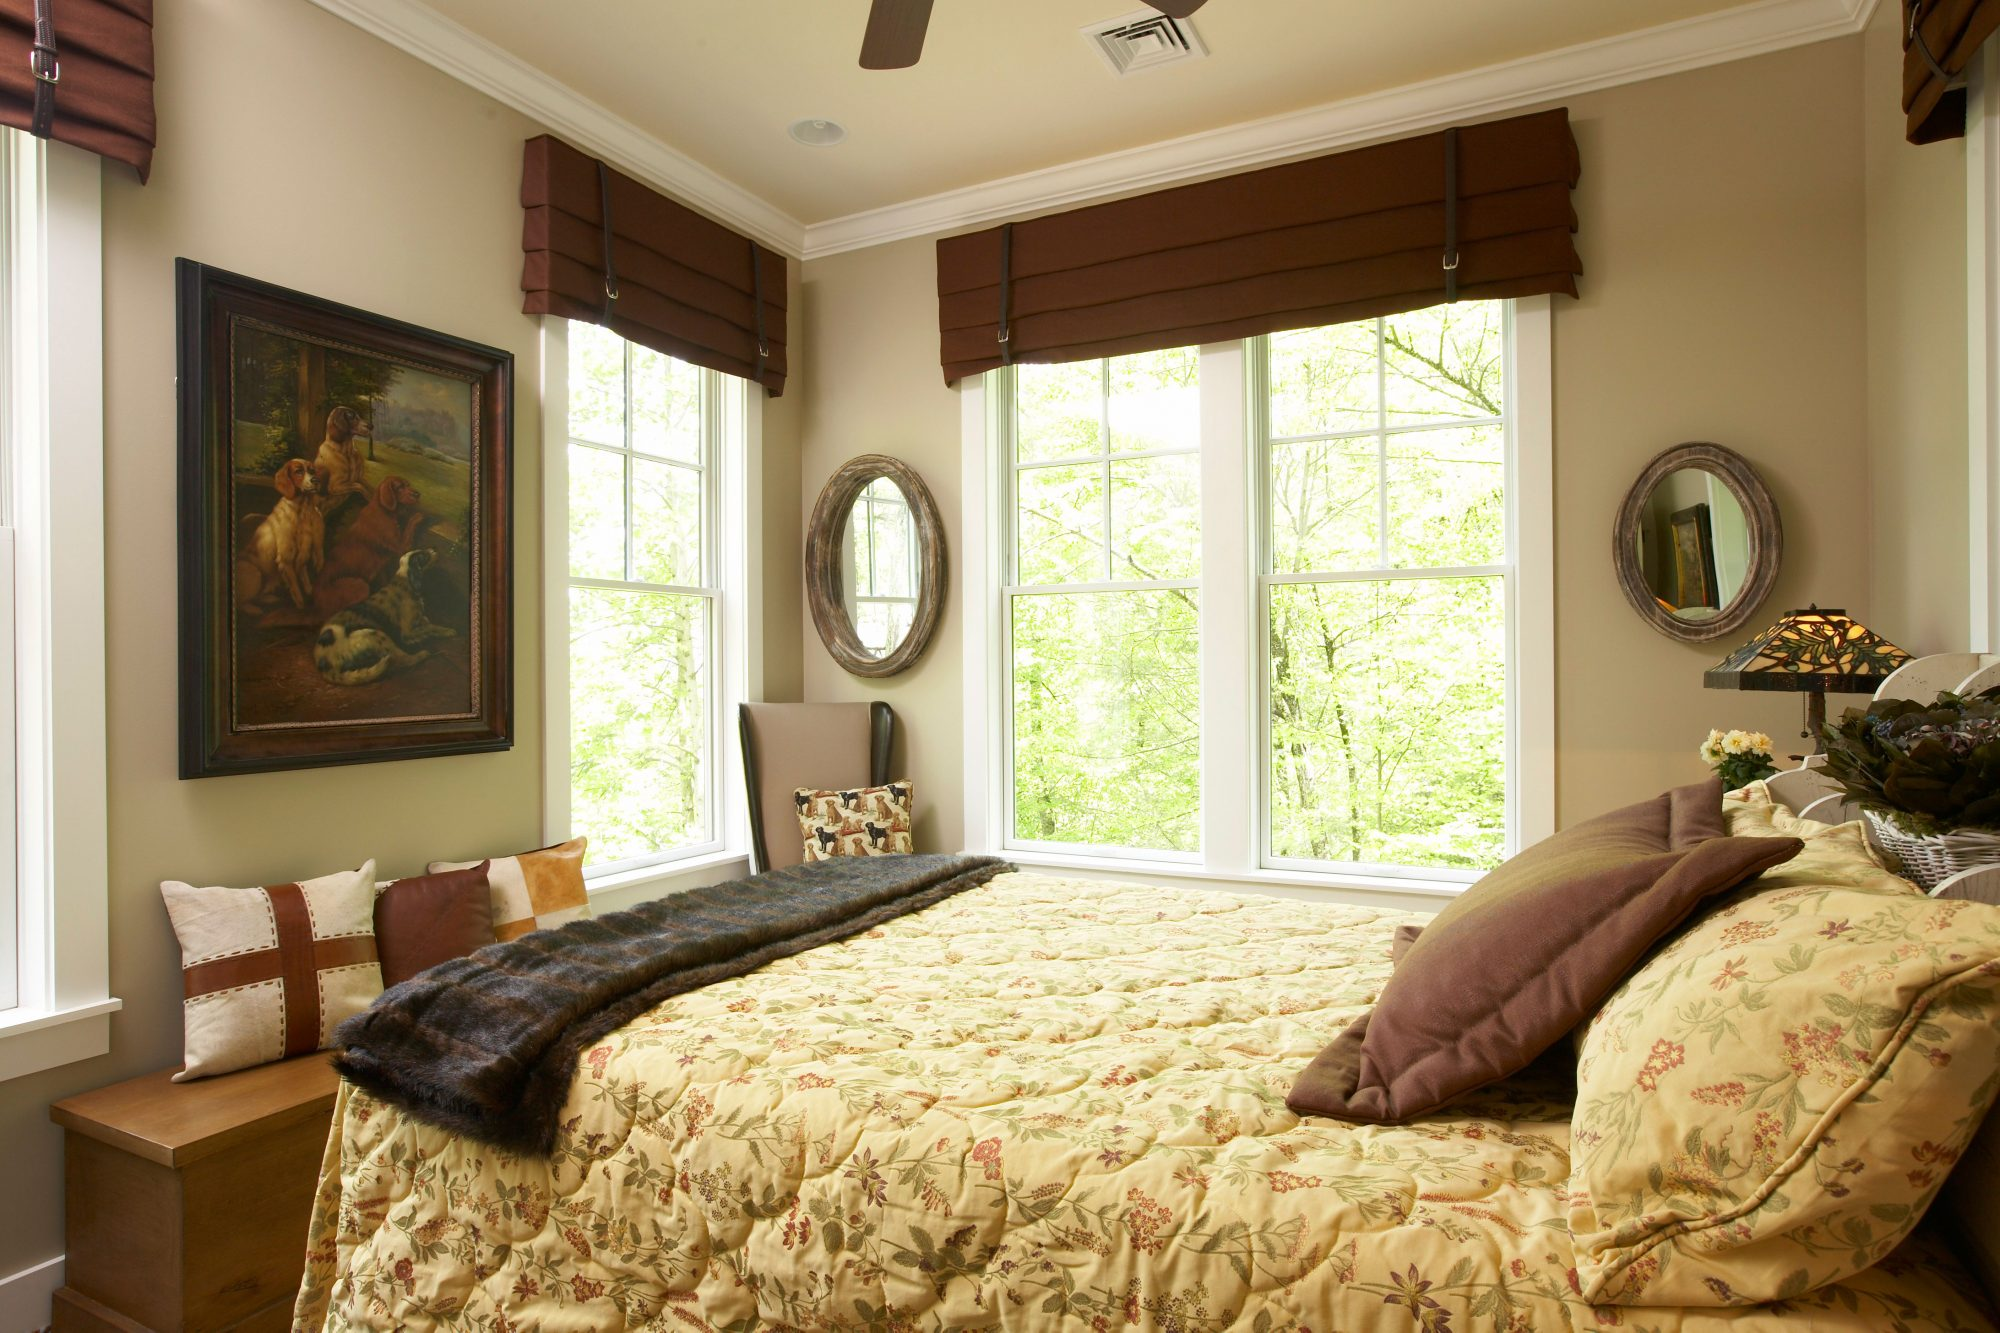 Window Treatments For Bedrooms bedroom window treatments - southern living